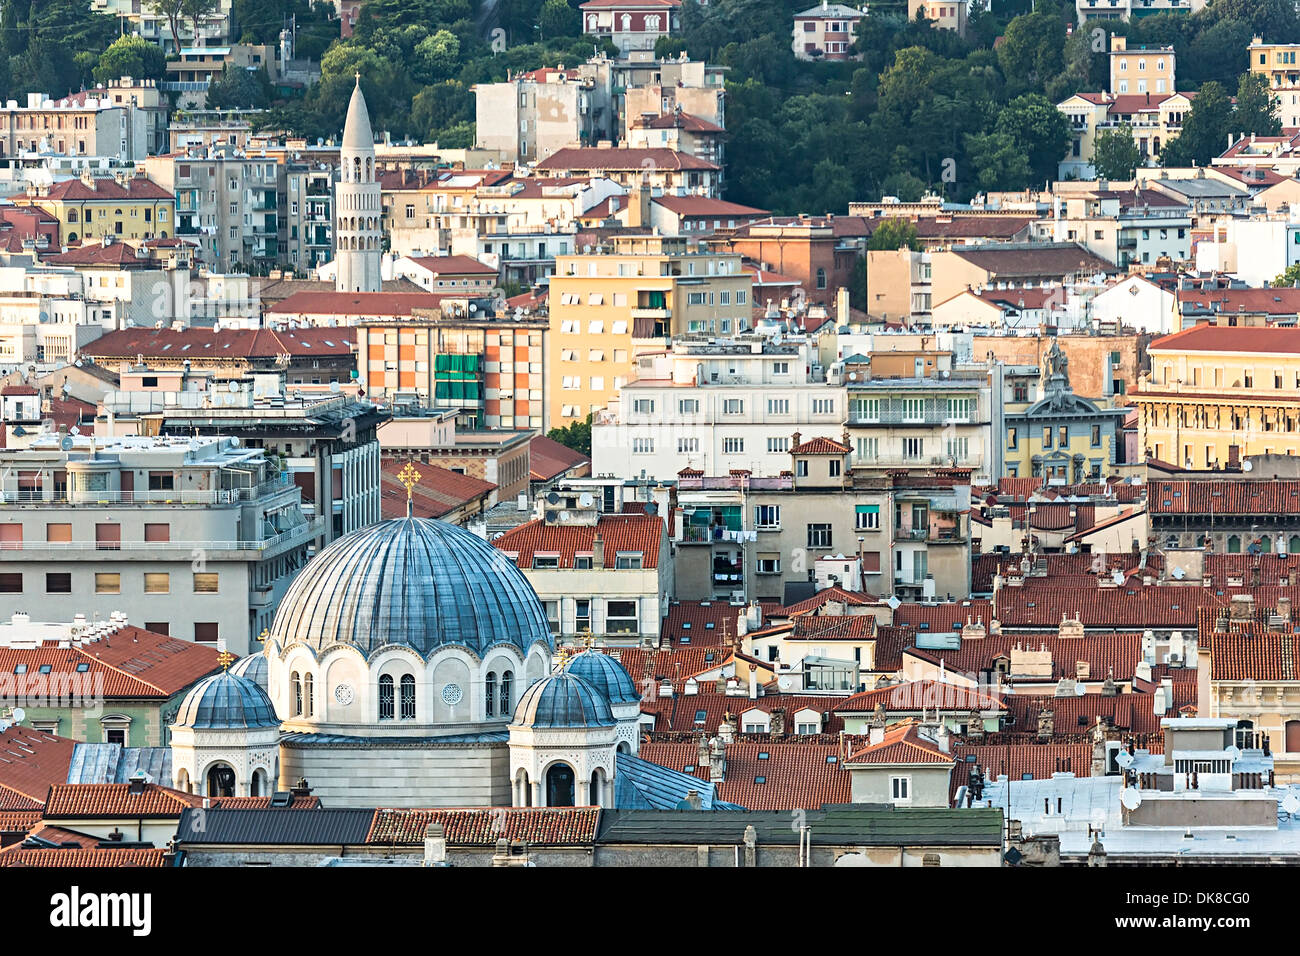 Roof tops with red tiles, Trieste, Italy - Stock Image